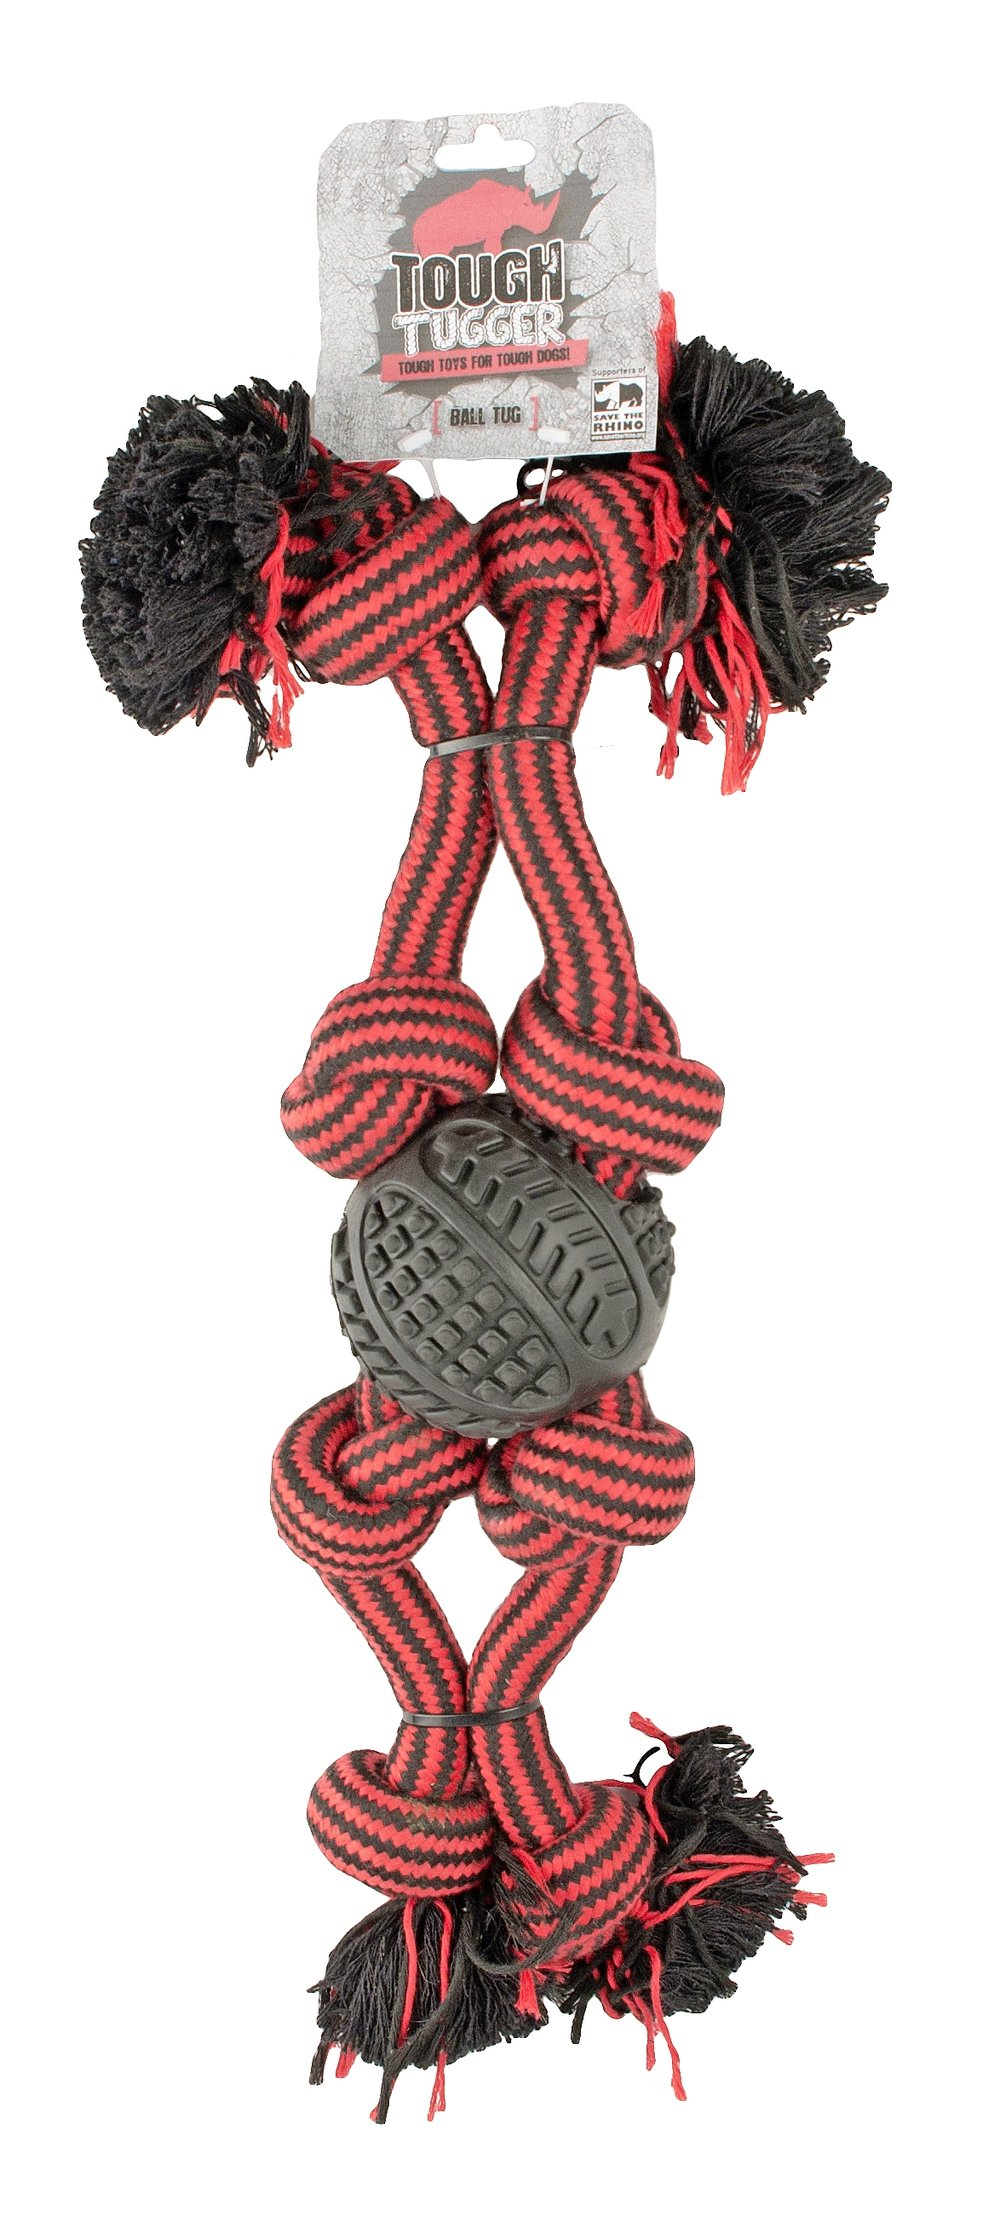 The Ball Tug from Pet Brands